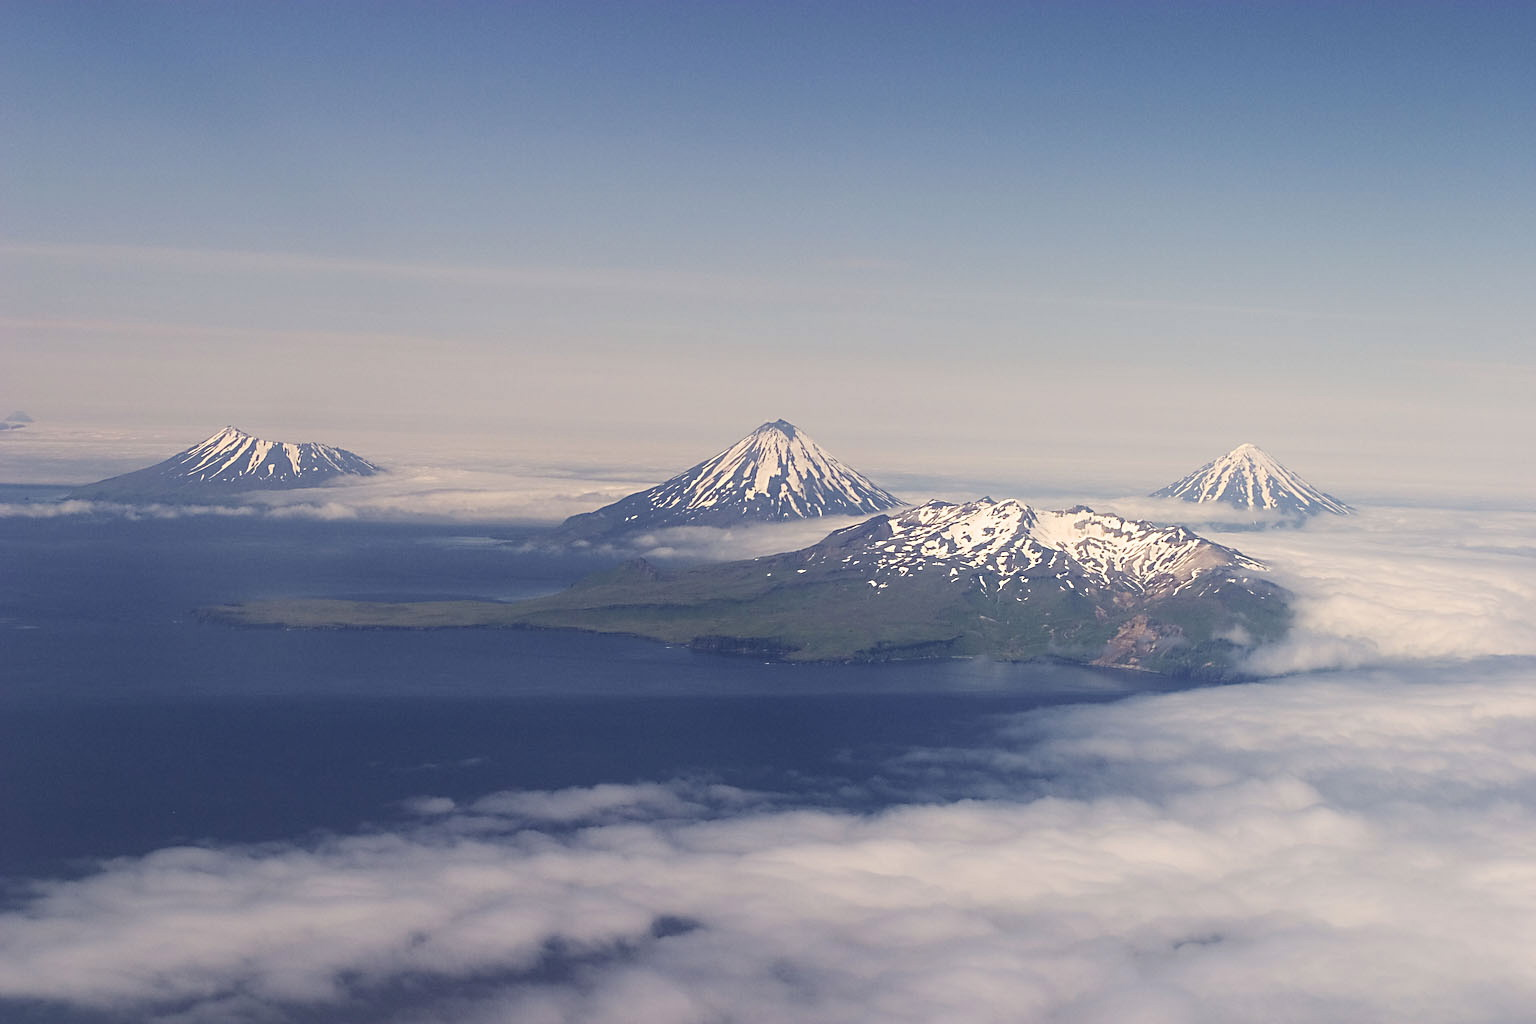 """An aerial photo of the Islands of the Four Mountains. Photo: Ken Wilson, author of """"The Aleutian Islands of AK: Living on the Edge"""""""